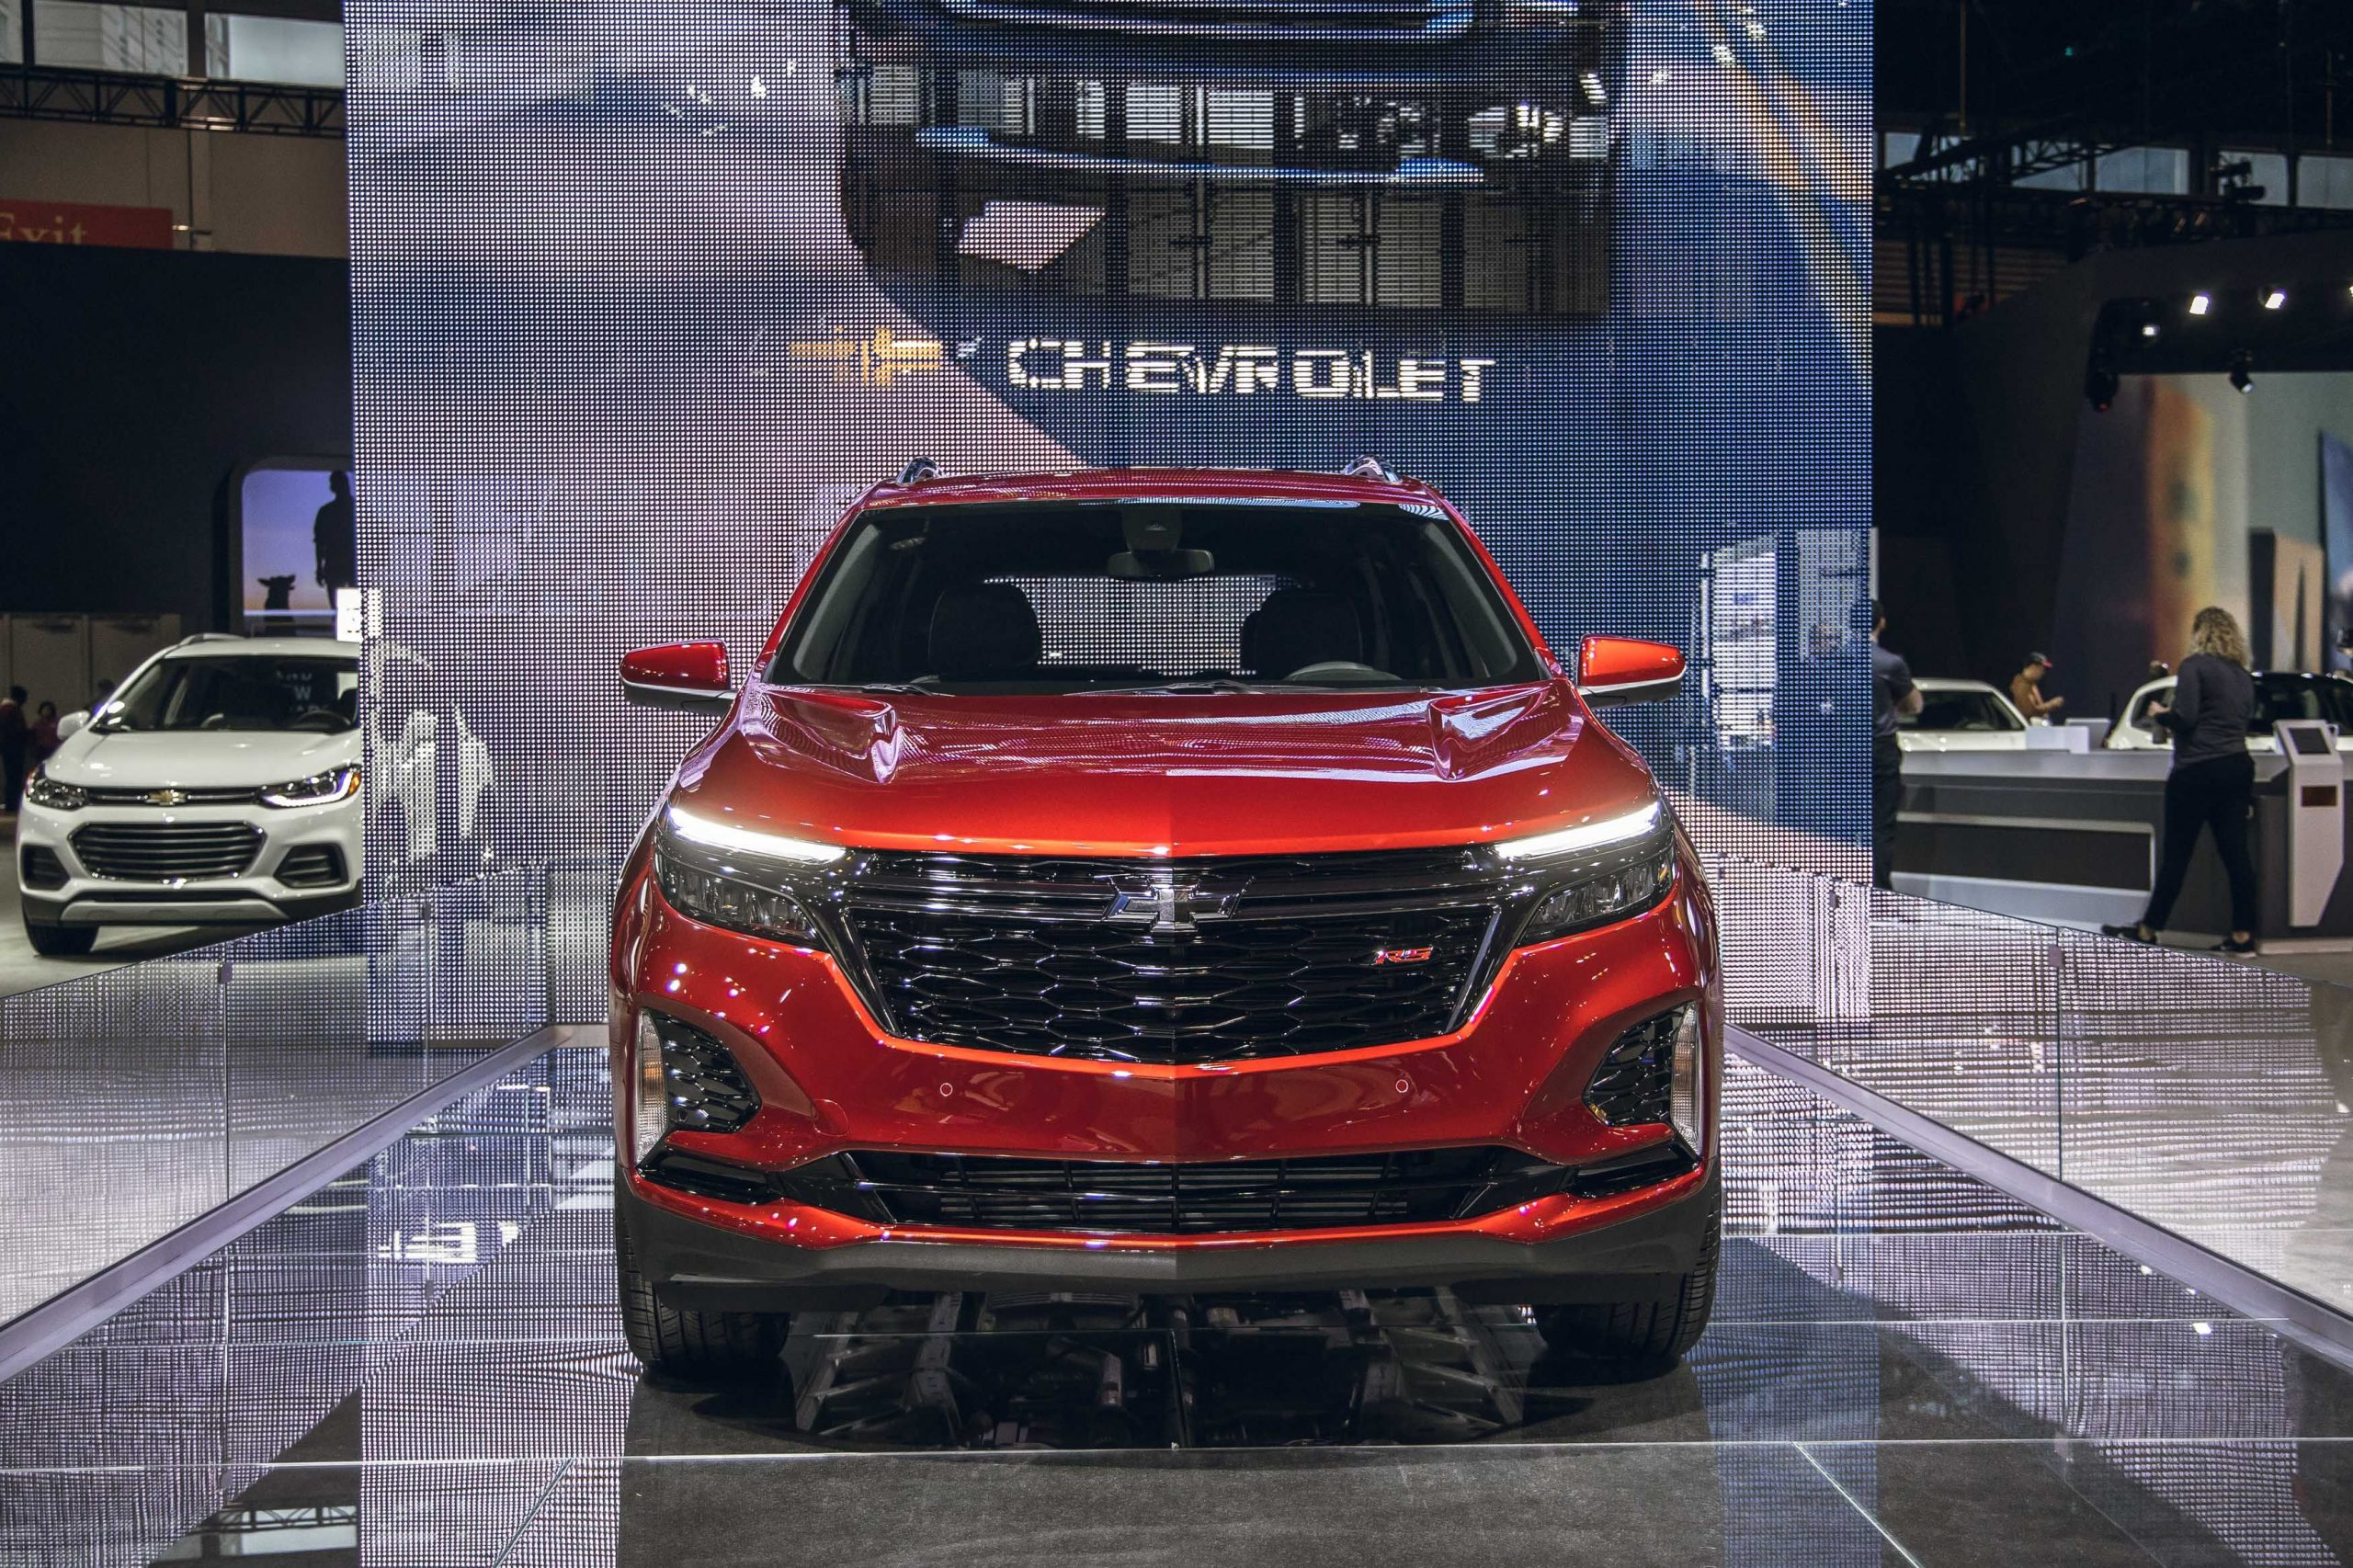 Chevy's Popular Equinox Gets Rs Trim, Updated Appearance For 2022 Chevy Blazer Rs Fwd, Grill, Gas Mileage